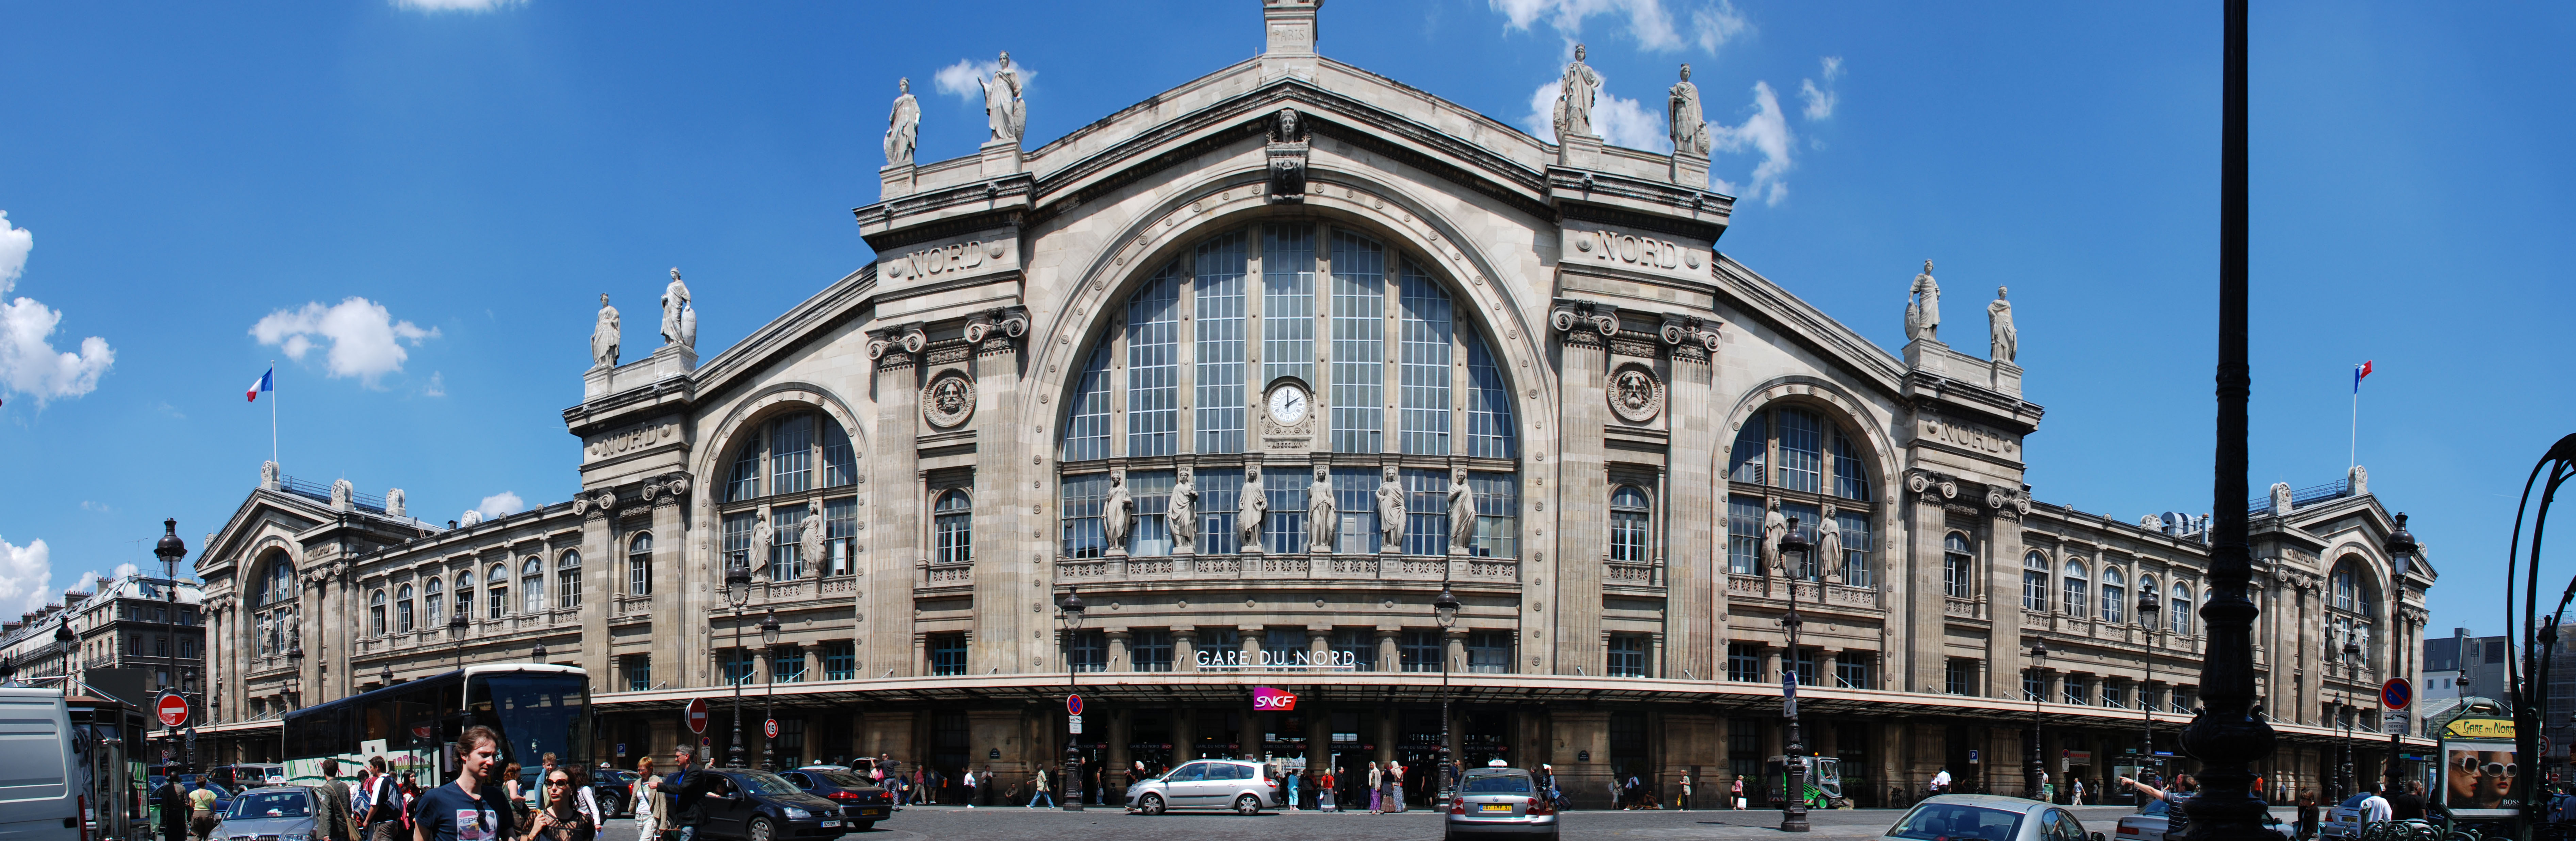 File:Paris Gare Du Nord Exterior.jpg - Wikimedia Commons